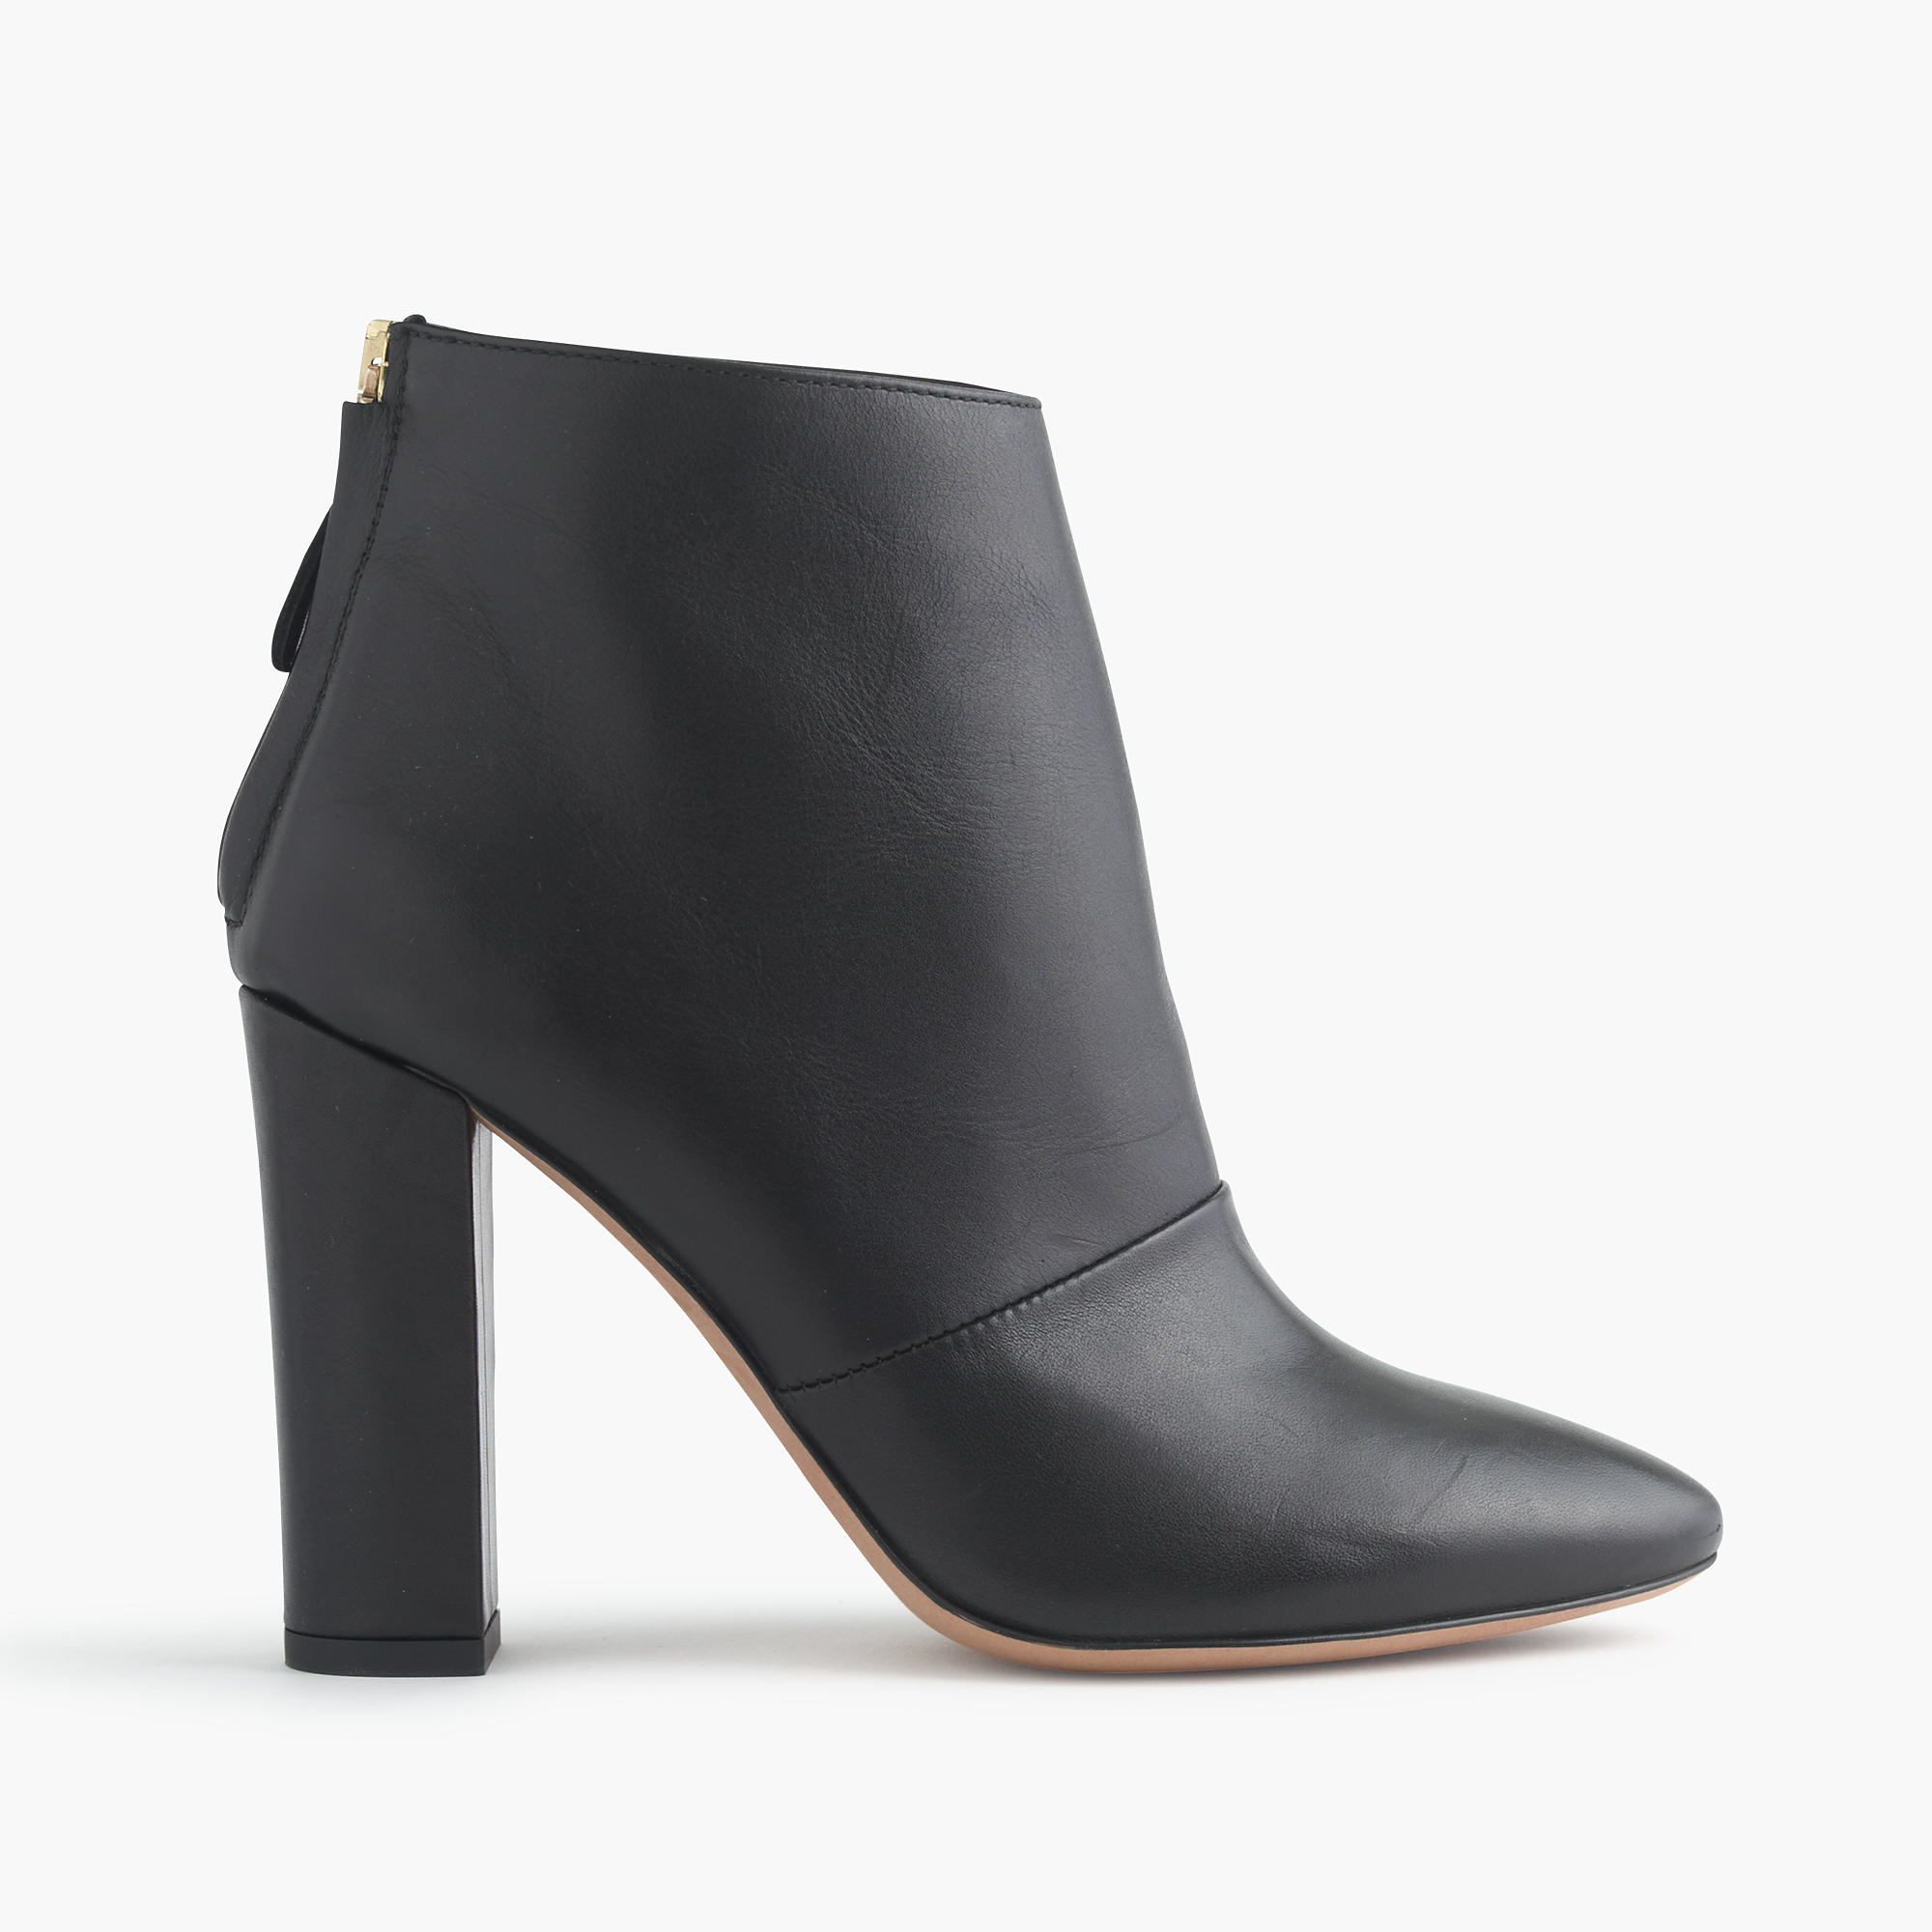 j crew adele ankle boots in black lyst